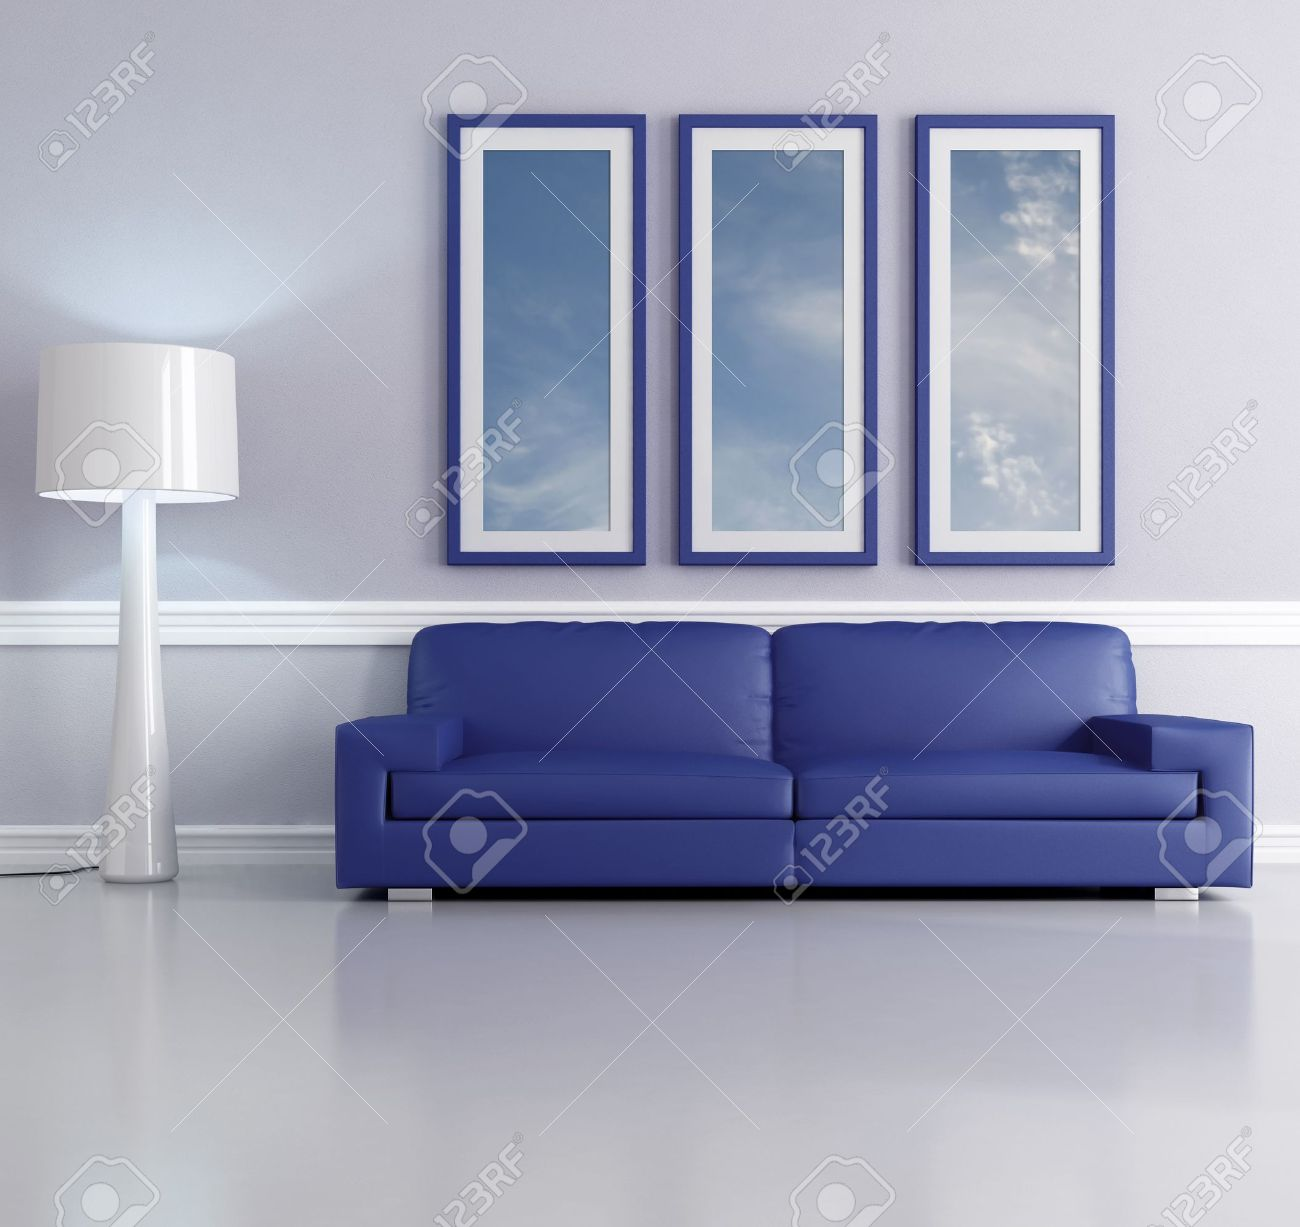 Blue Sofa In A Living Room With Lamp And Picture Frame